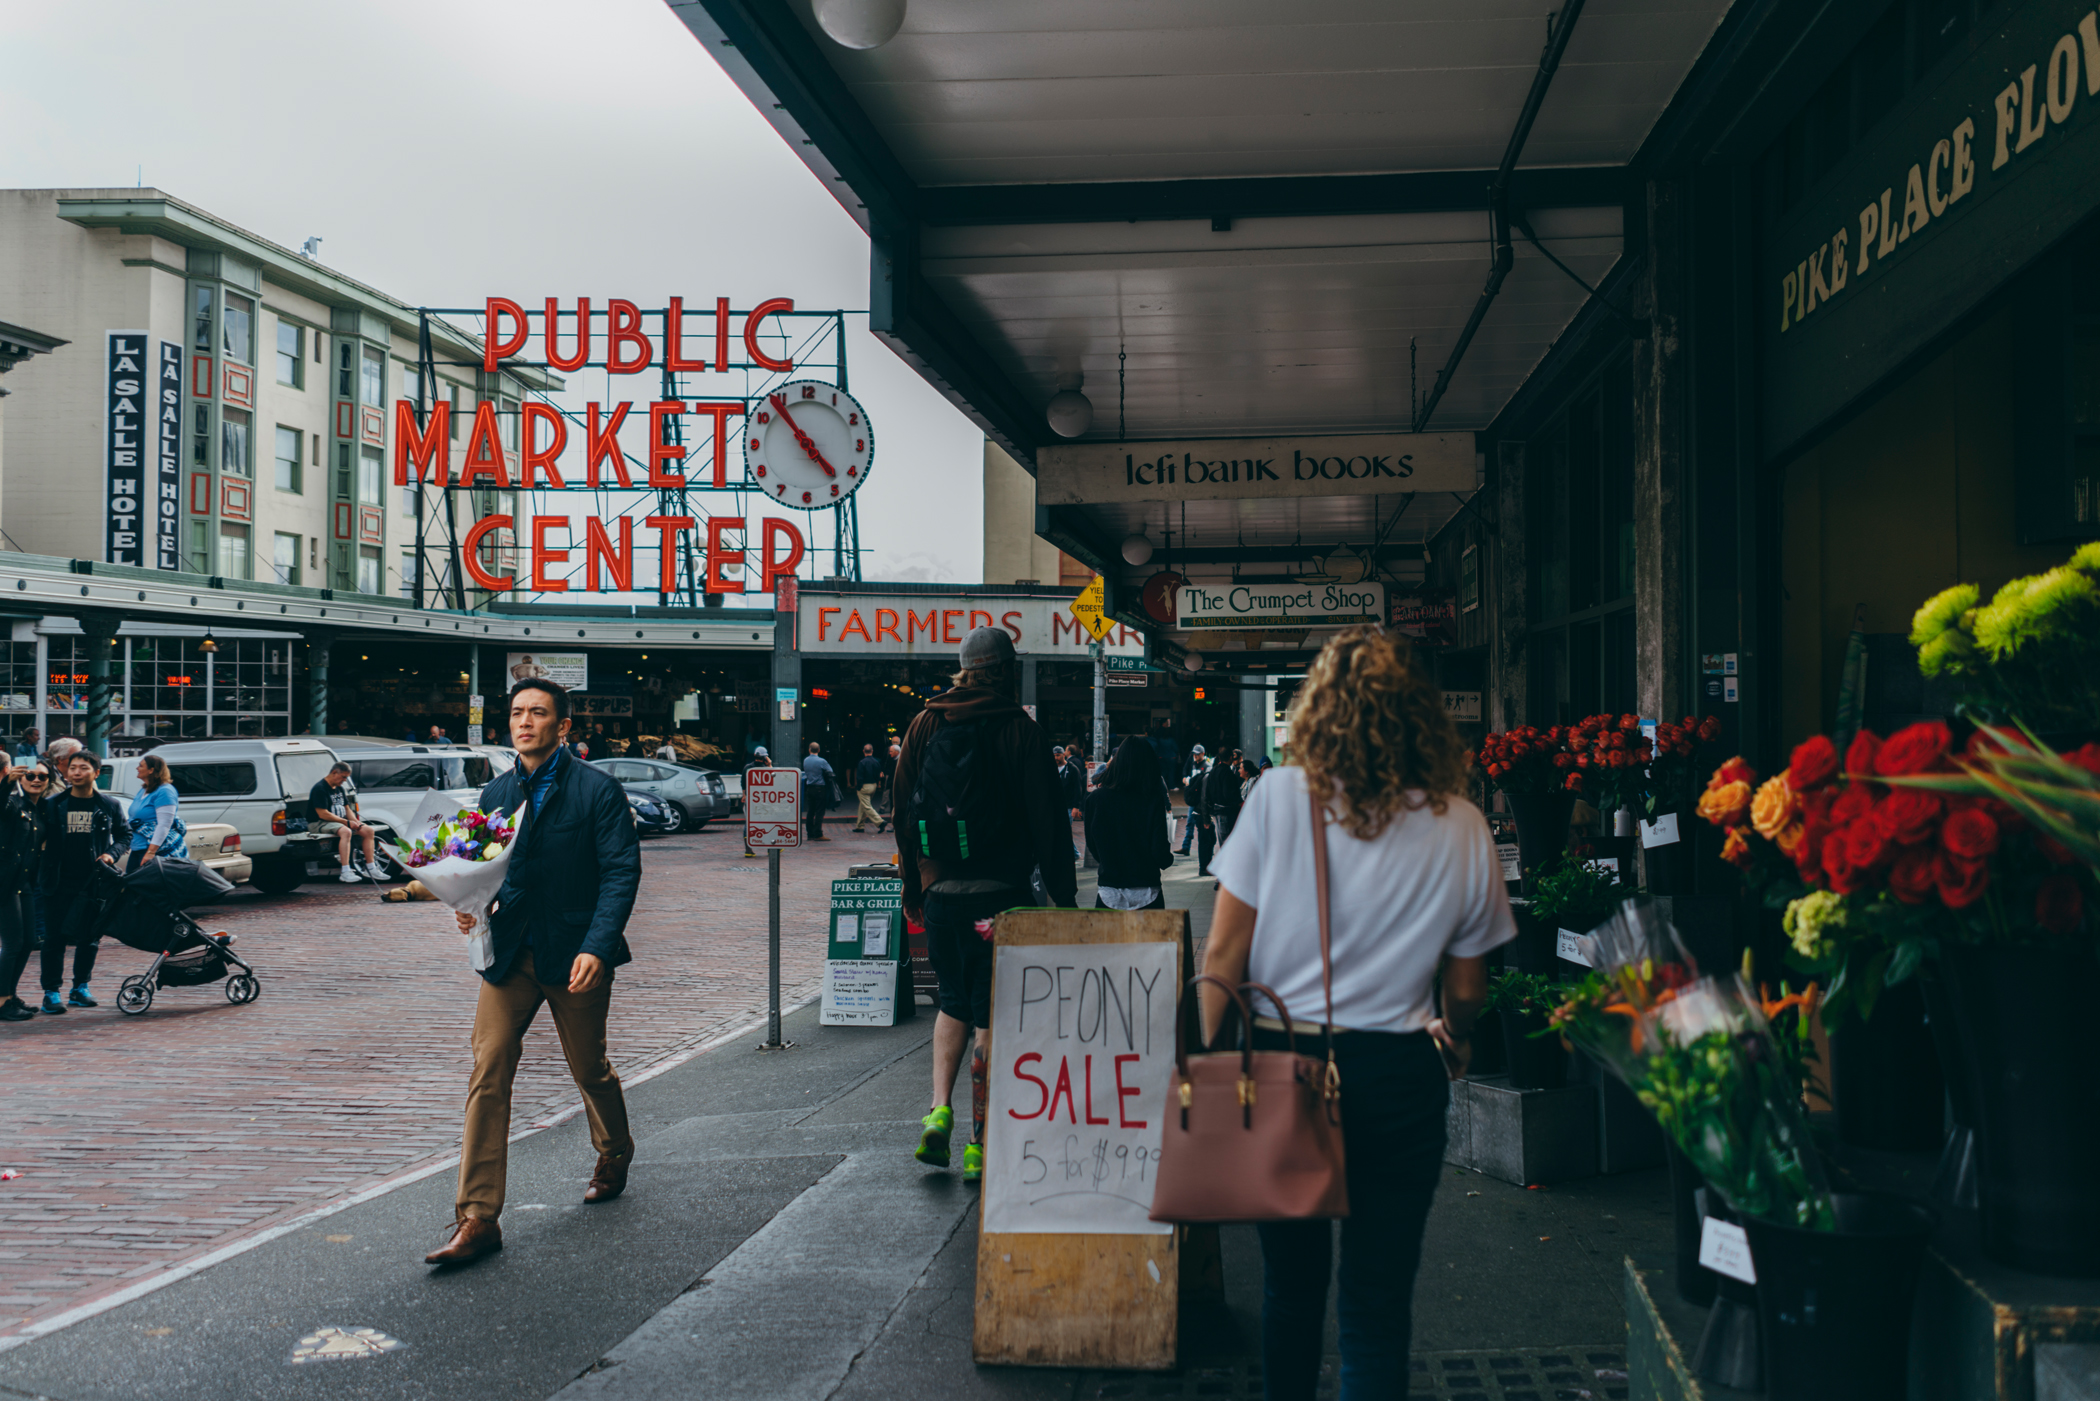 Travel Diary: Pike Place Market, Seattle, WA